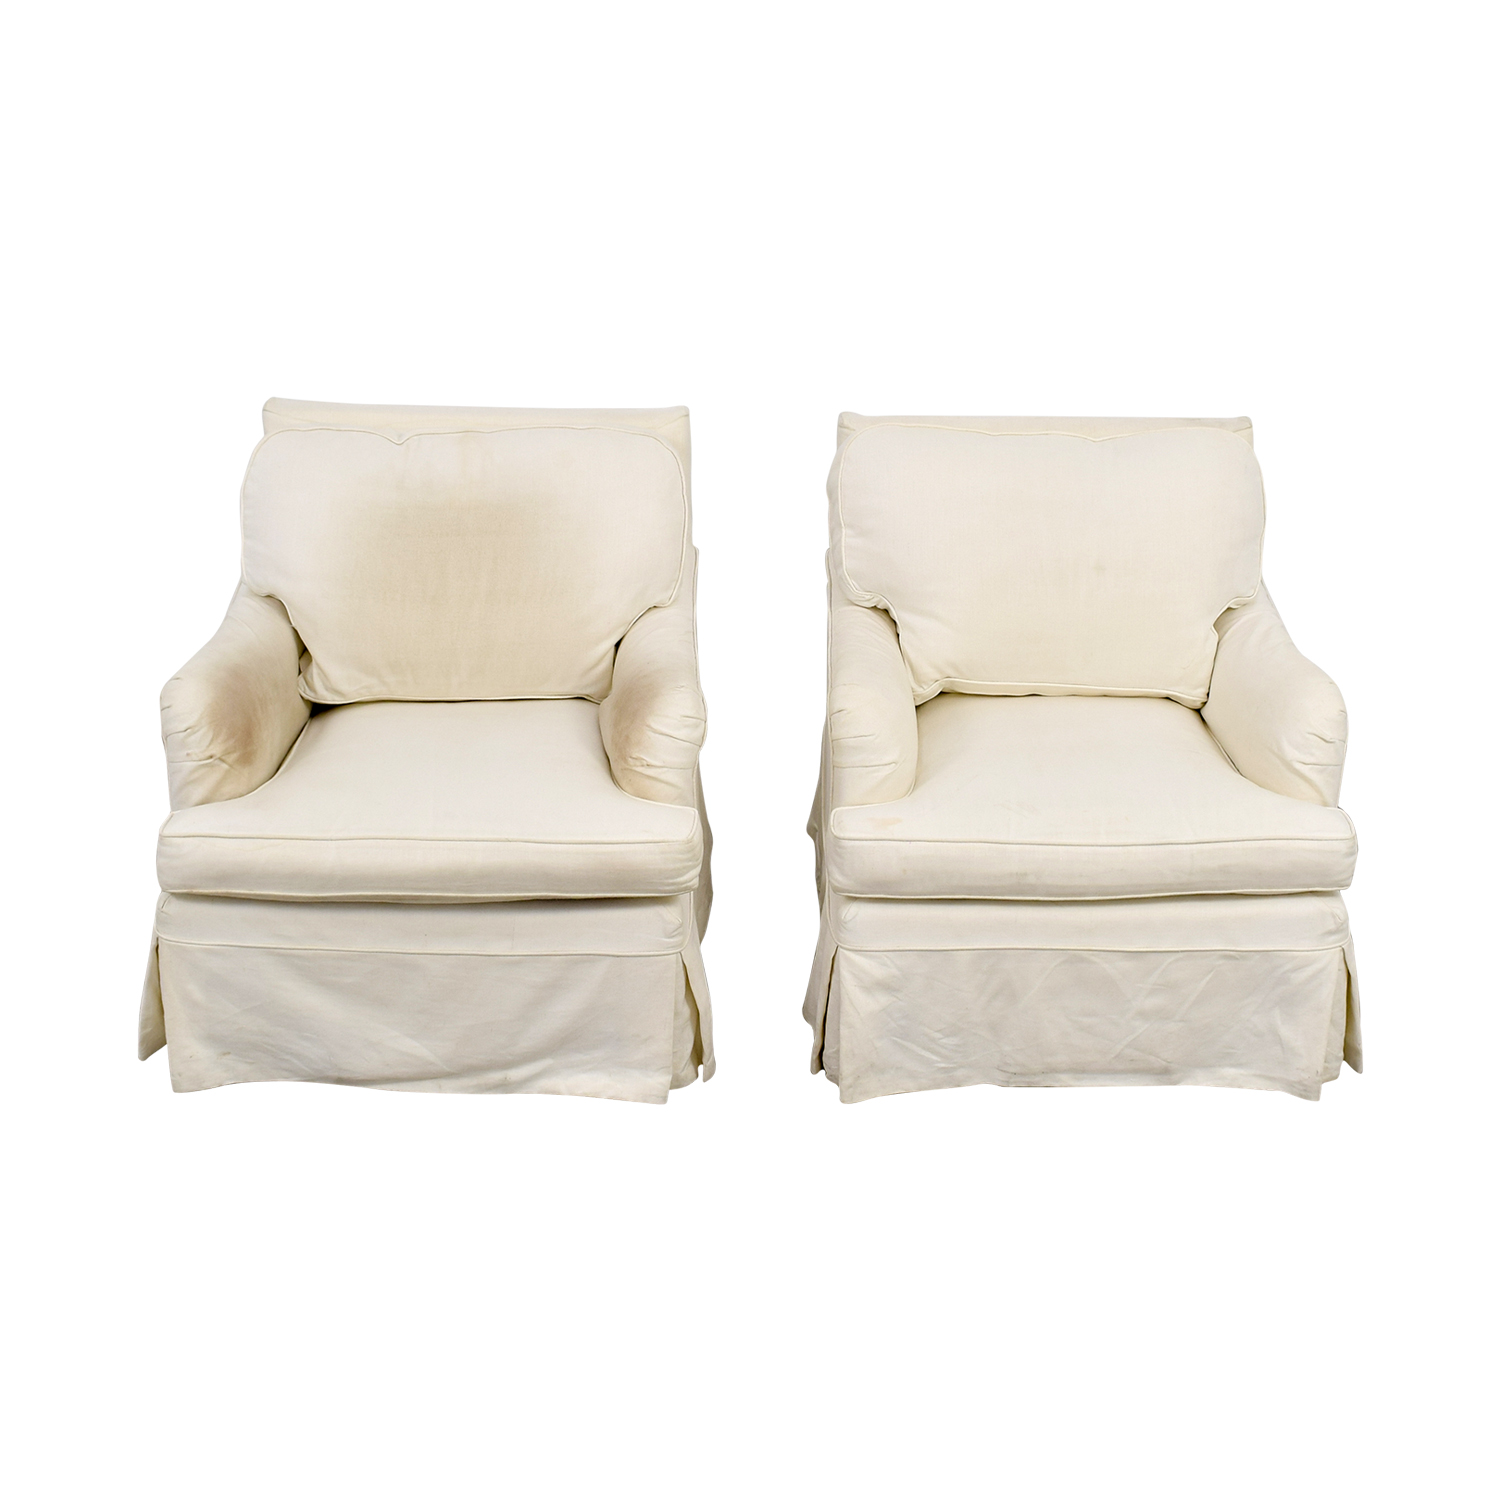 ... William Farrell William Farrell Upholstered Swivel Arm Chairs On Sale  ...